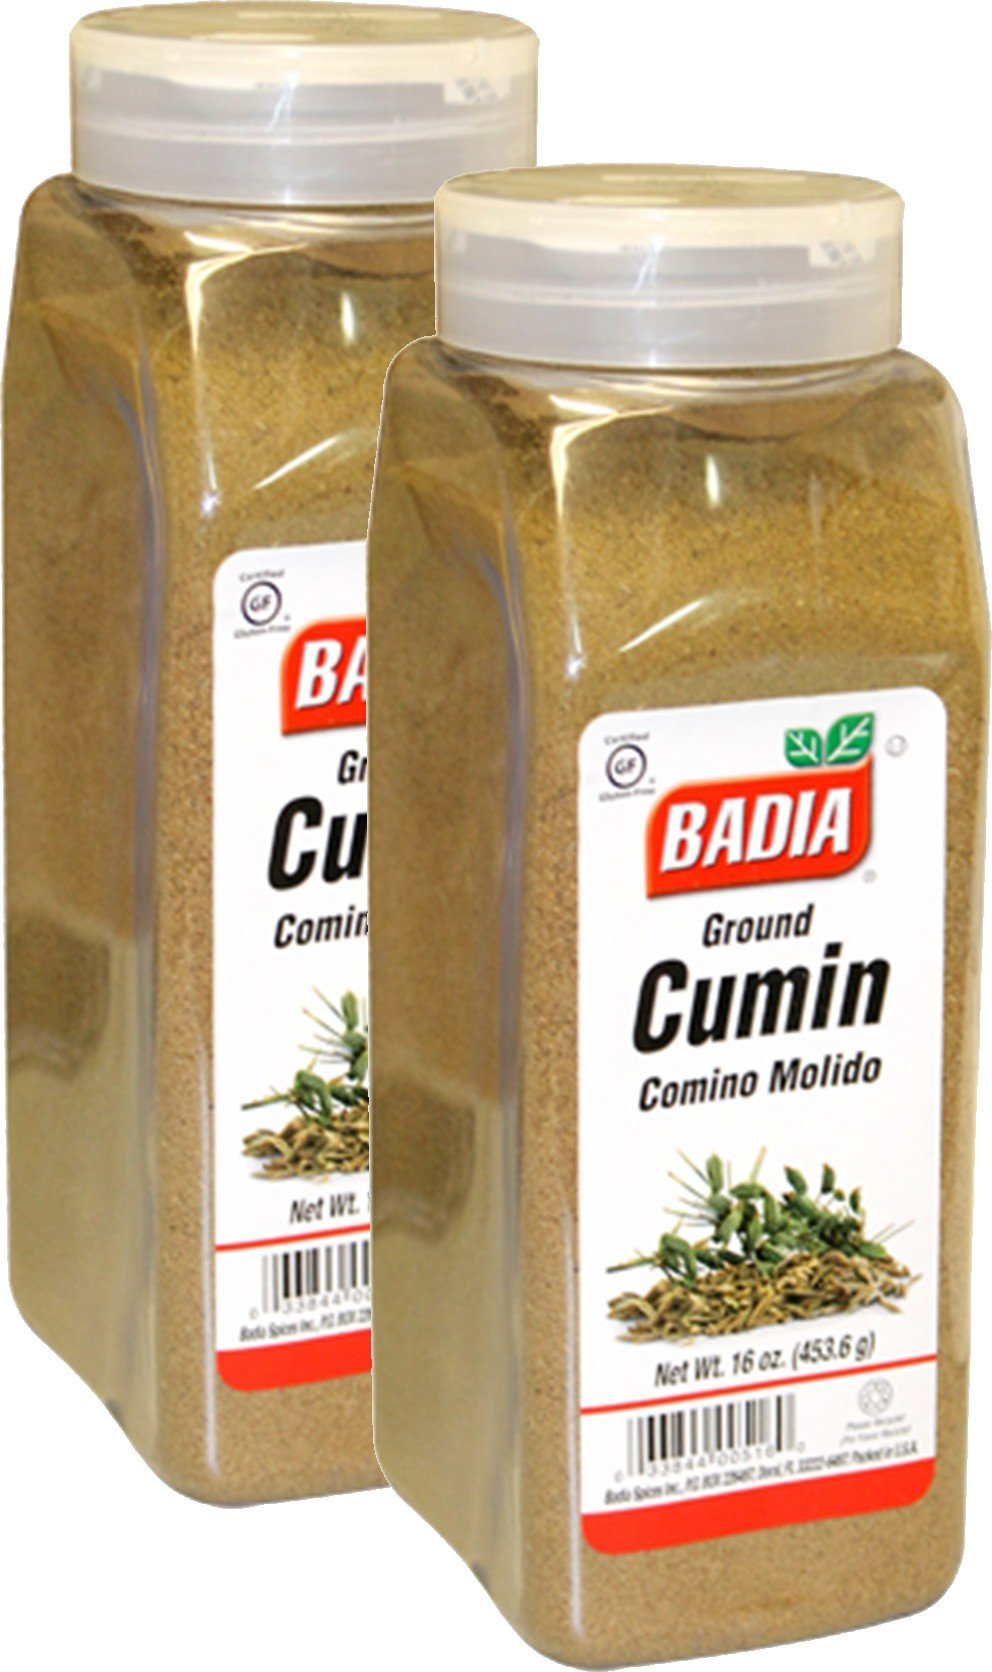 Badia Cumin Seed Ground 16 oz Pack of 2